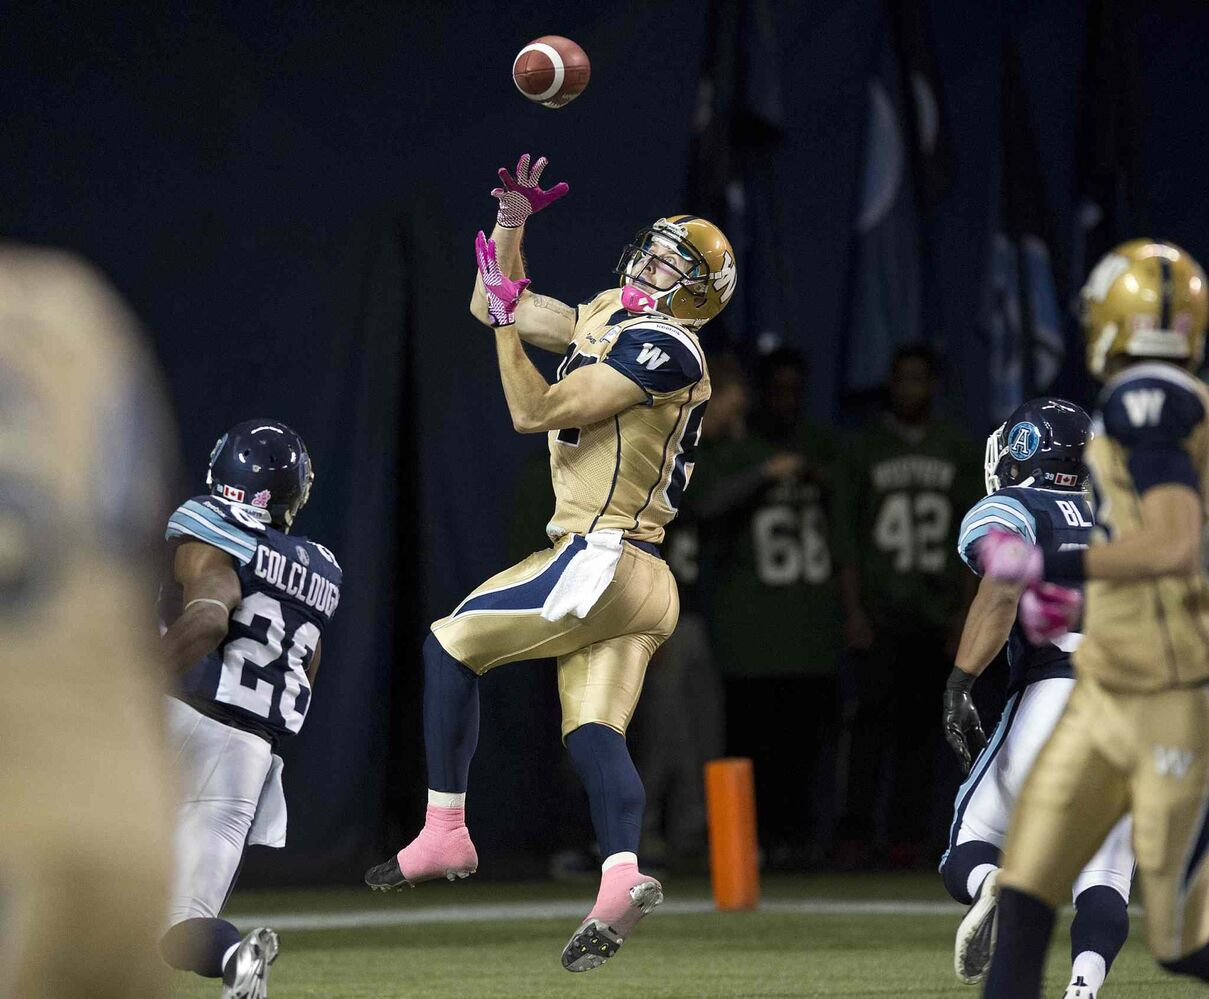 Winnipeg Blue Bombers Rory Kohlert (centre) hauls in a touchdown pass against the Toronto Argonauts during the first half. (Frank Gunn / The Canadian Press)